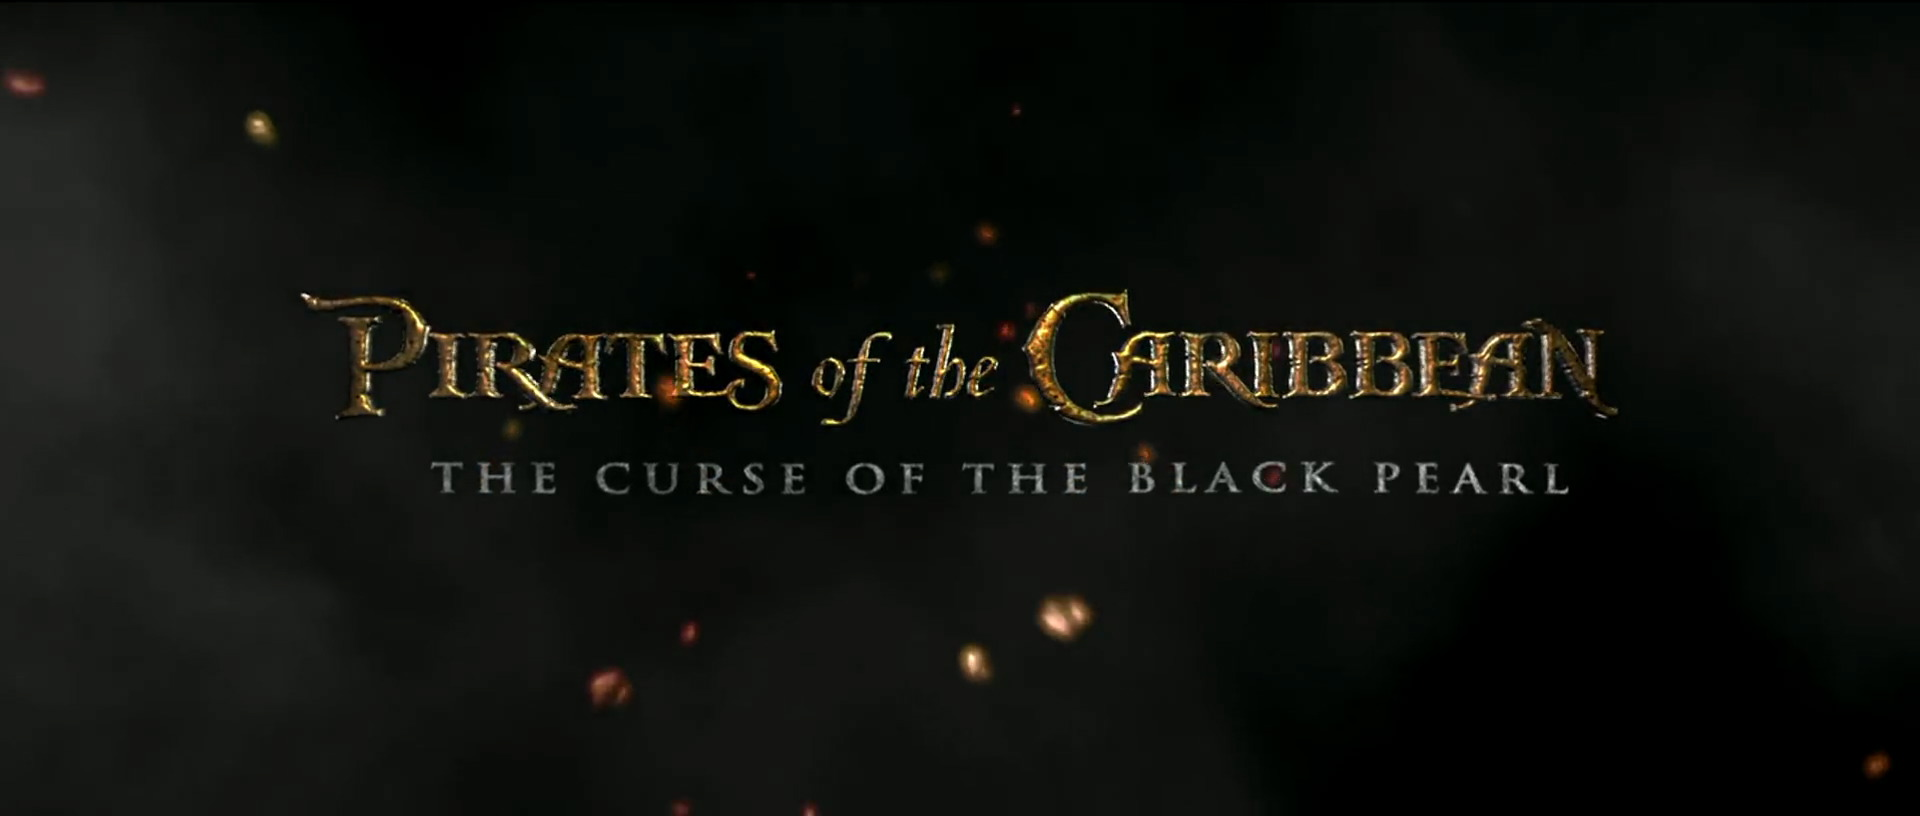 pirates of the caribbean 1 in hindi 9xmovies